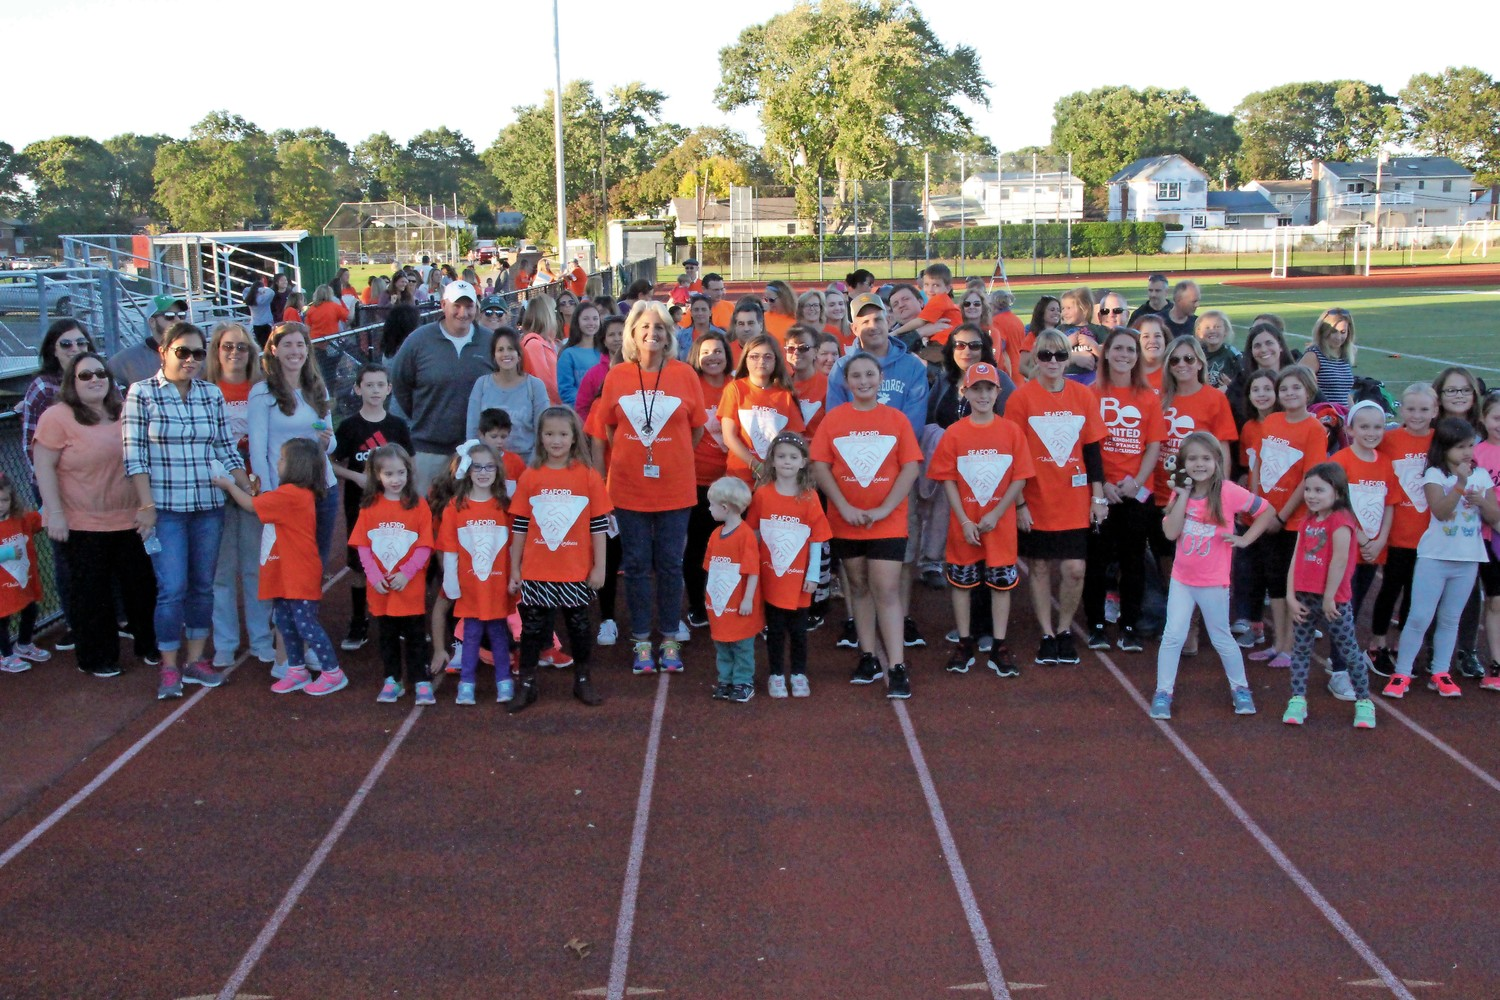 Members of the Seaford School District and community participated in a Unity Walk on Oct. 20 to promote kindness and inclusion for students.